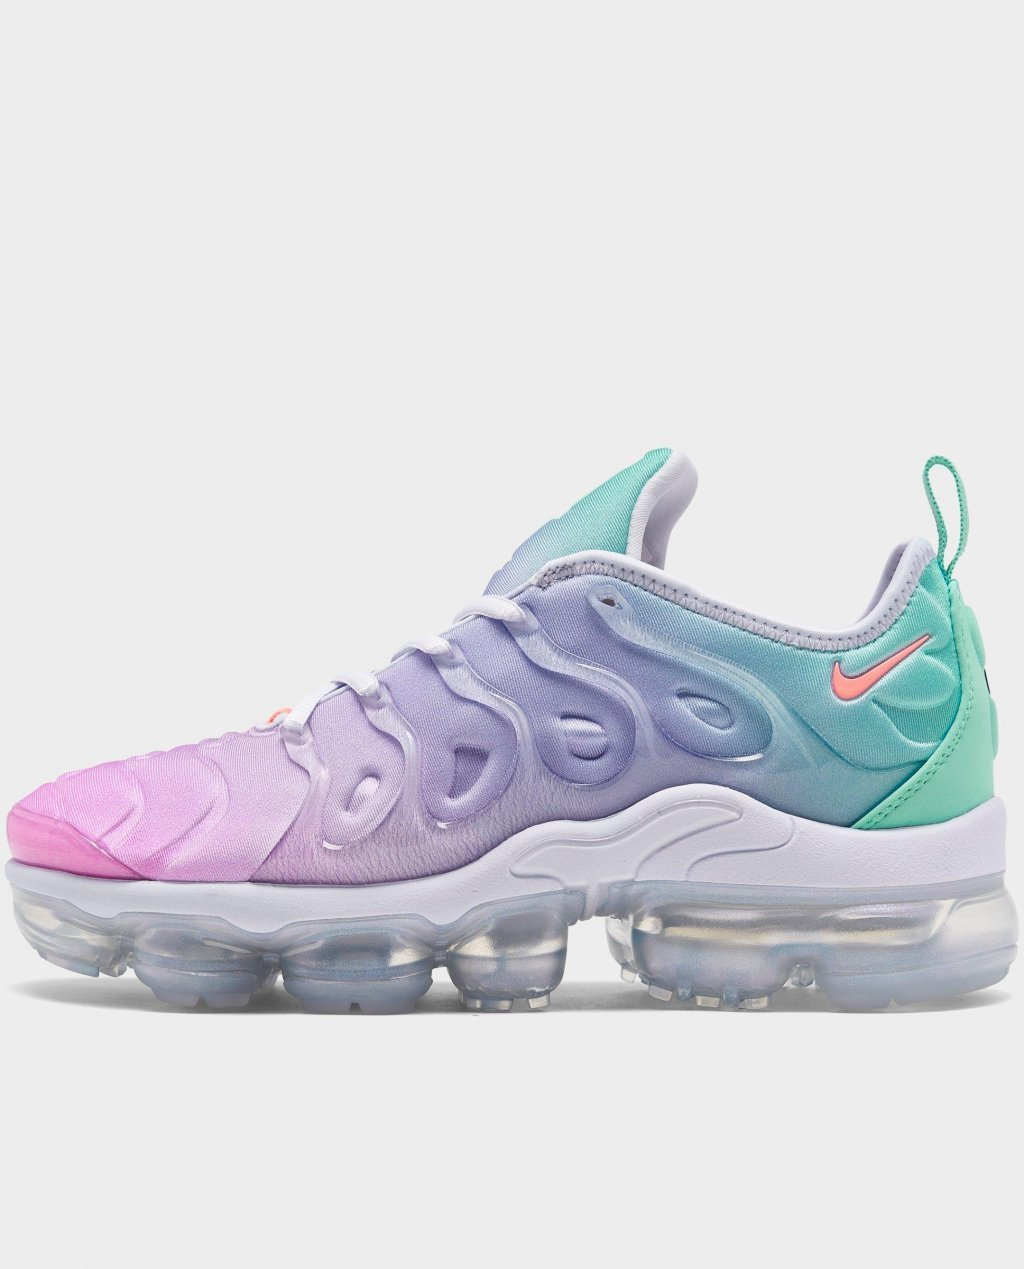 Nike Air Vapormax Plus Pastel